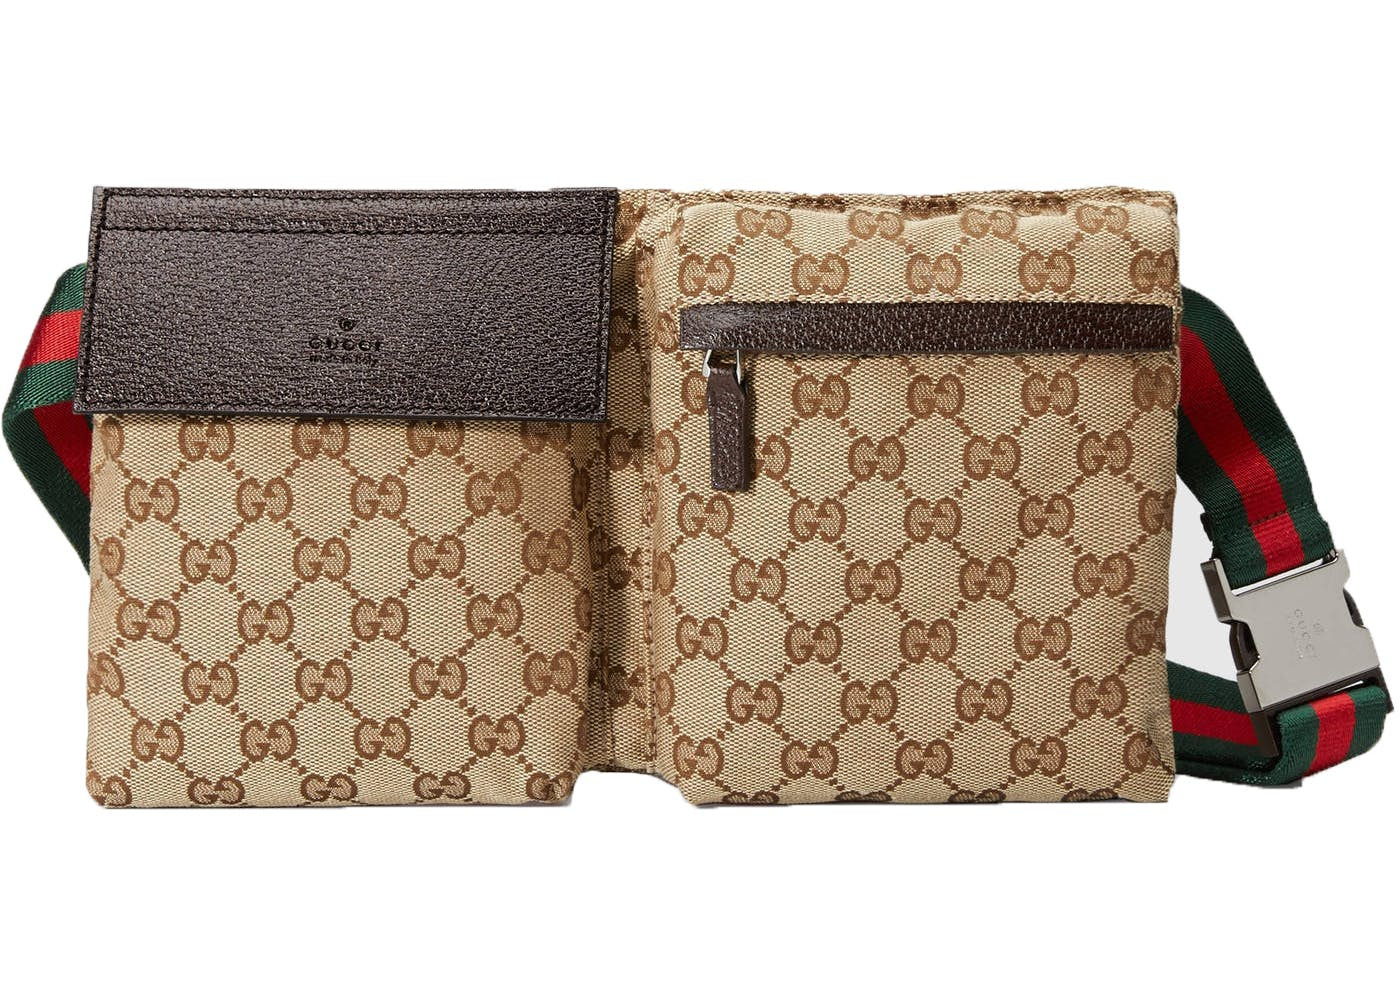 fc8337ec86e5e3 In classic Monogram GG Canvas, this waist bag has not one but two  compartments and the iconic red and green strap that's synonymous for Gucci.  Buy it here